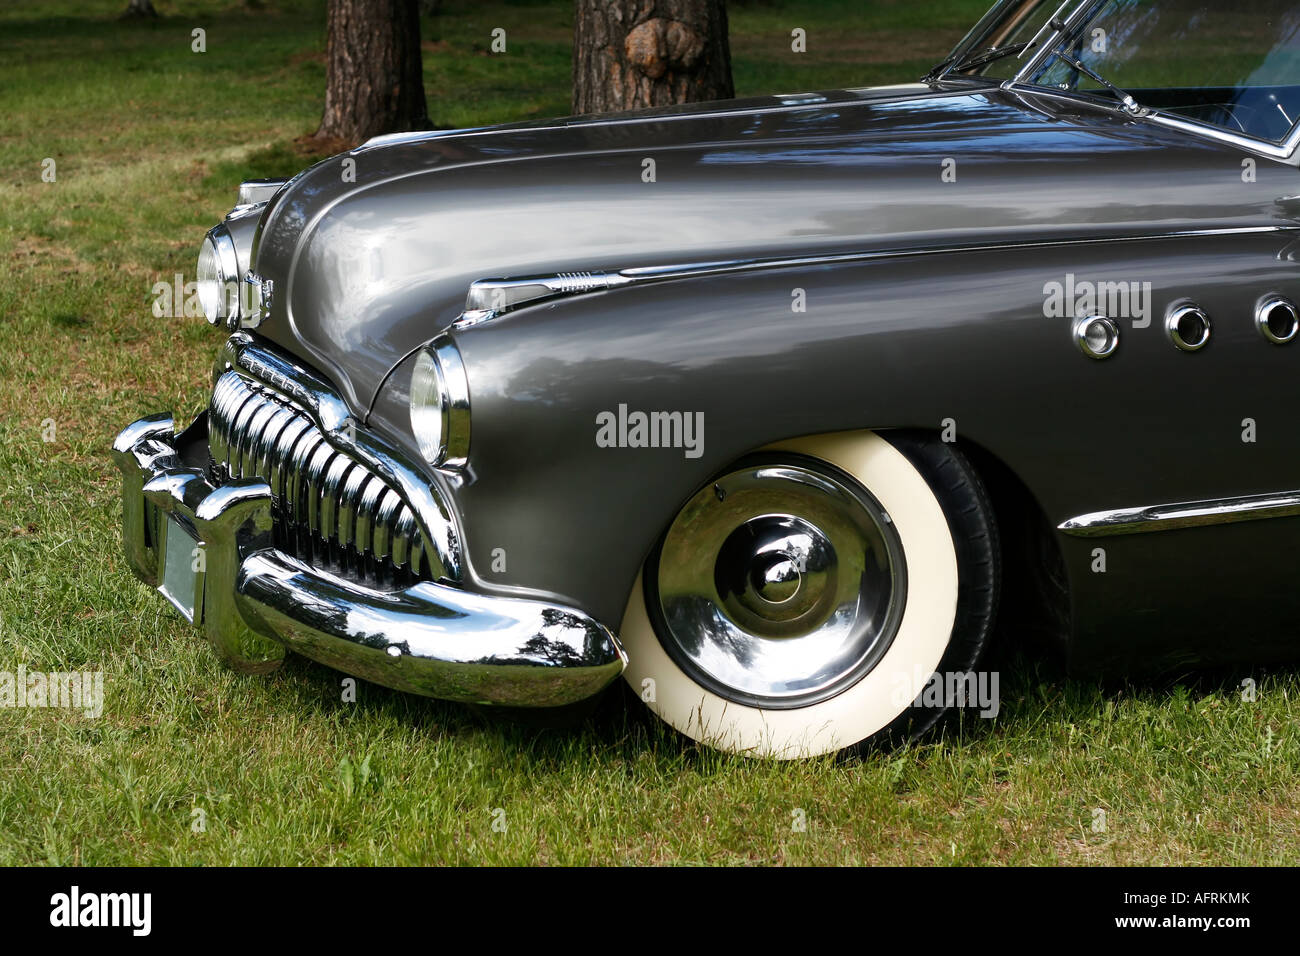 close up of vintage car - Stock Image